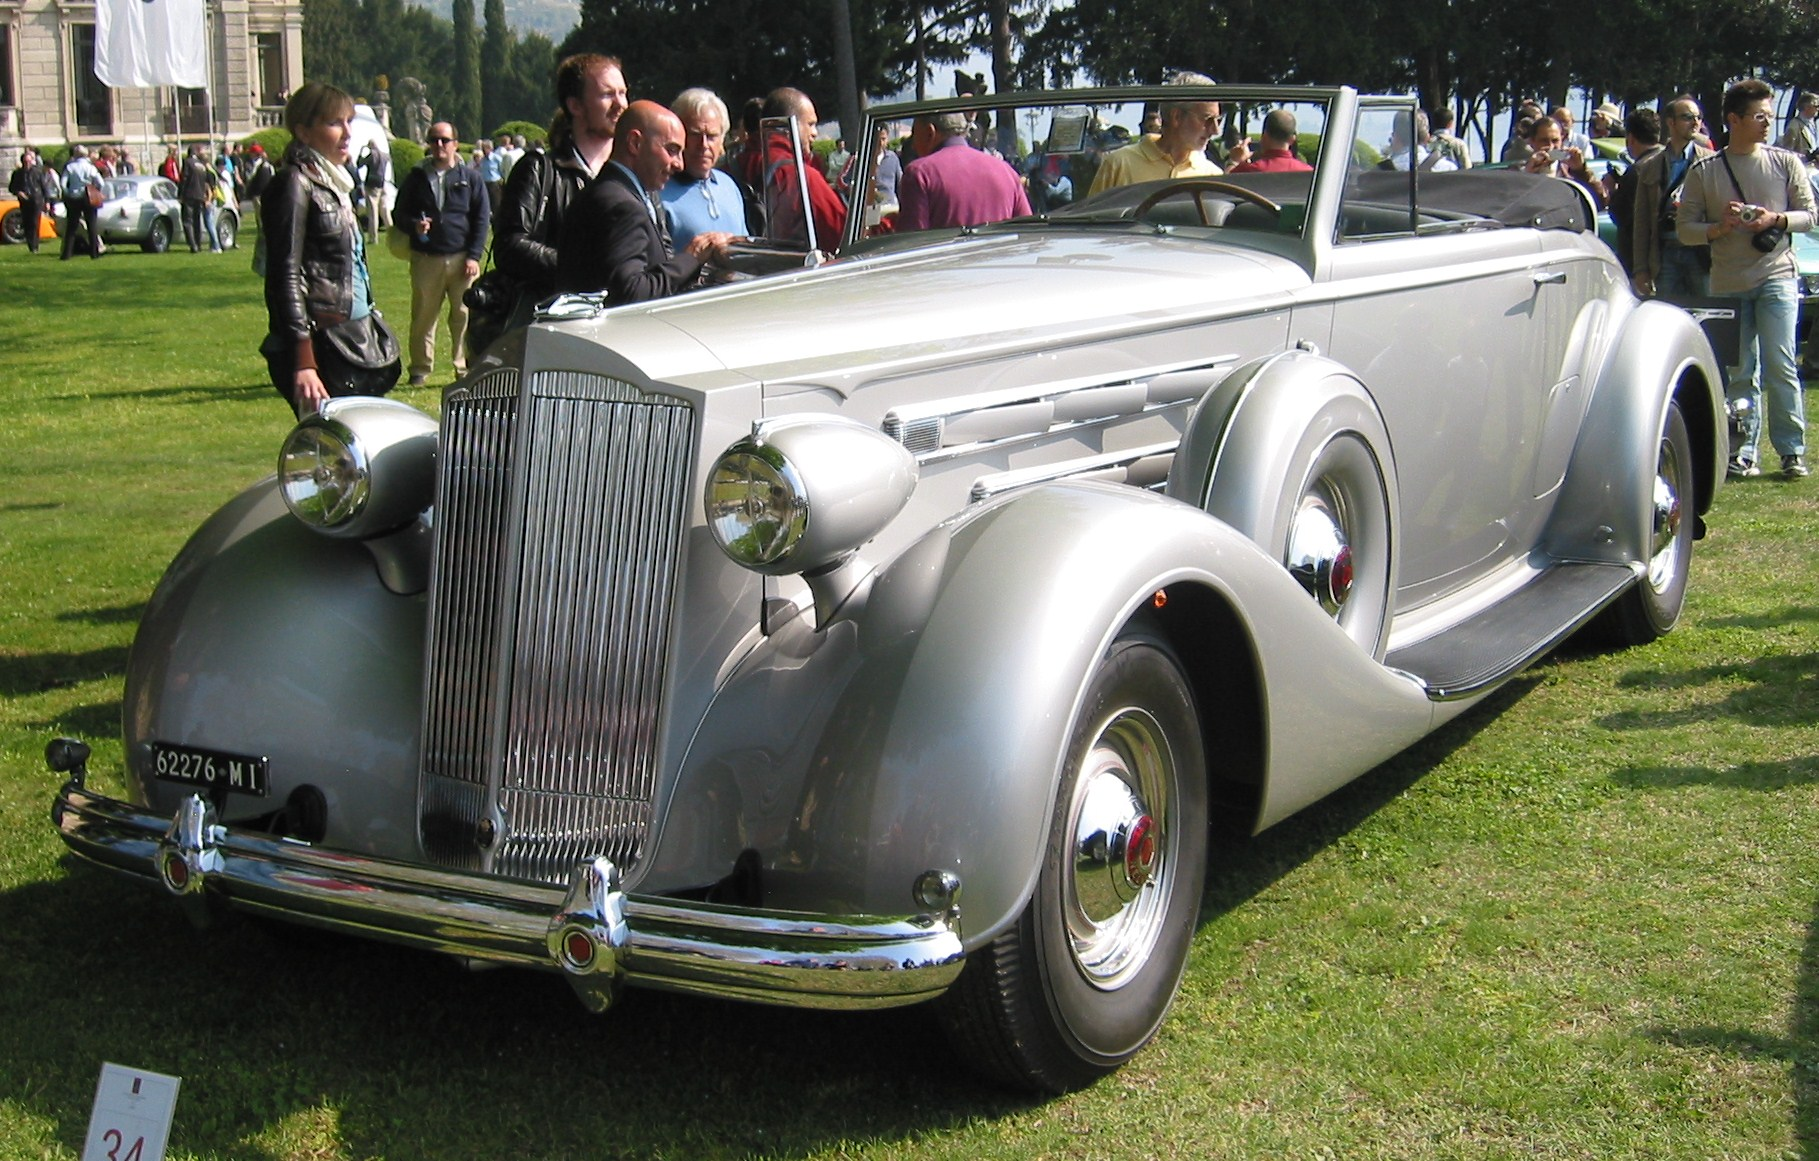 File:Packard 1507 Twelve Convertible Victoria Style 1027 1937.JPG